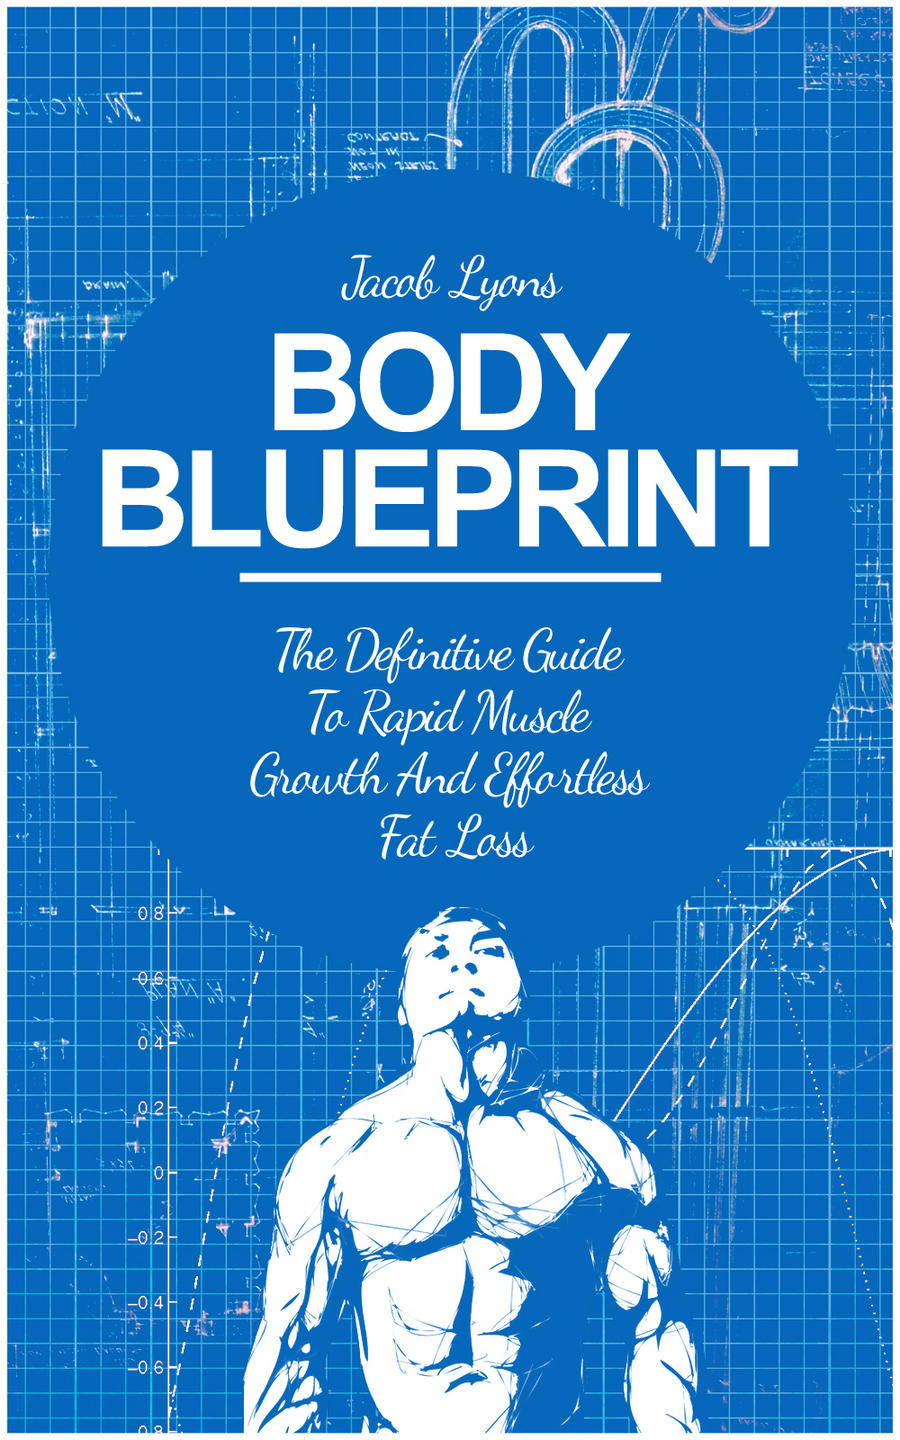 Body blueprint book cover by spice3boy on deviantart body blueprint book cover by spice3boy body blueprint book cover by spice3boy malvernweather Image collections